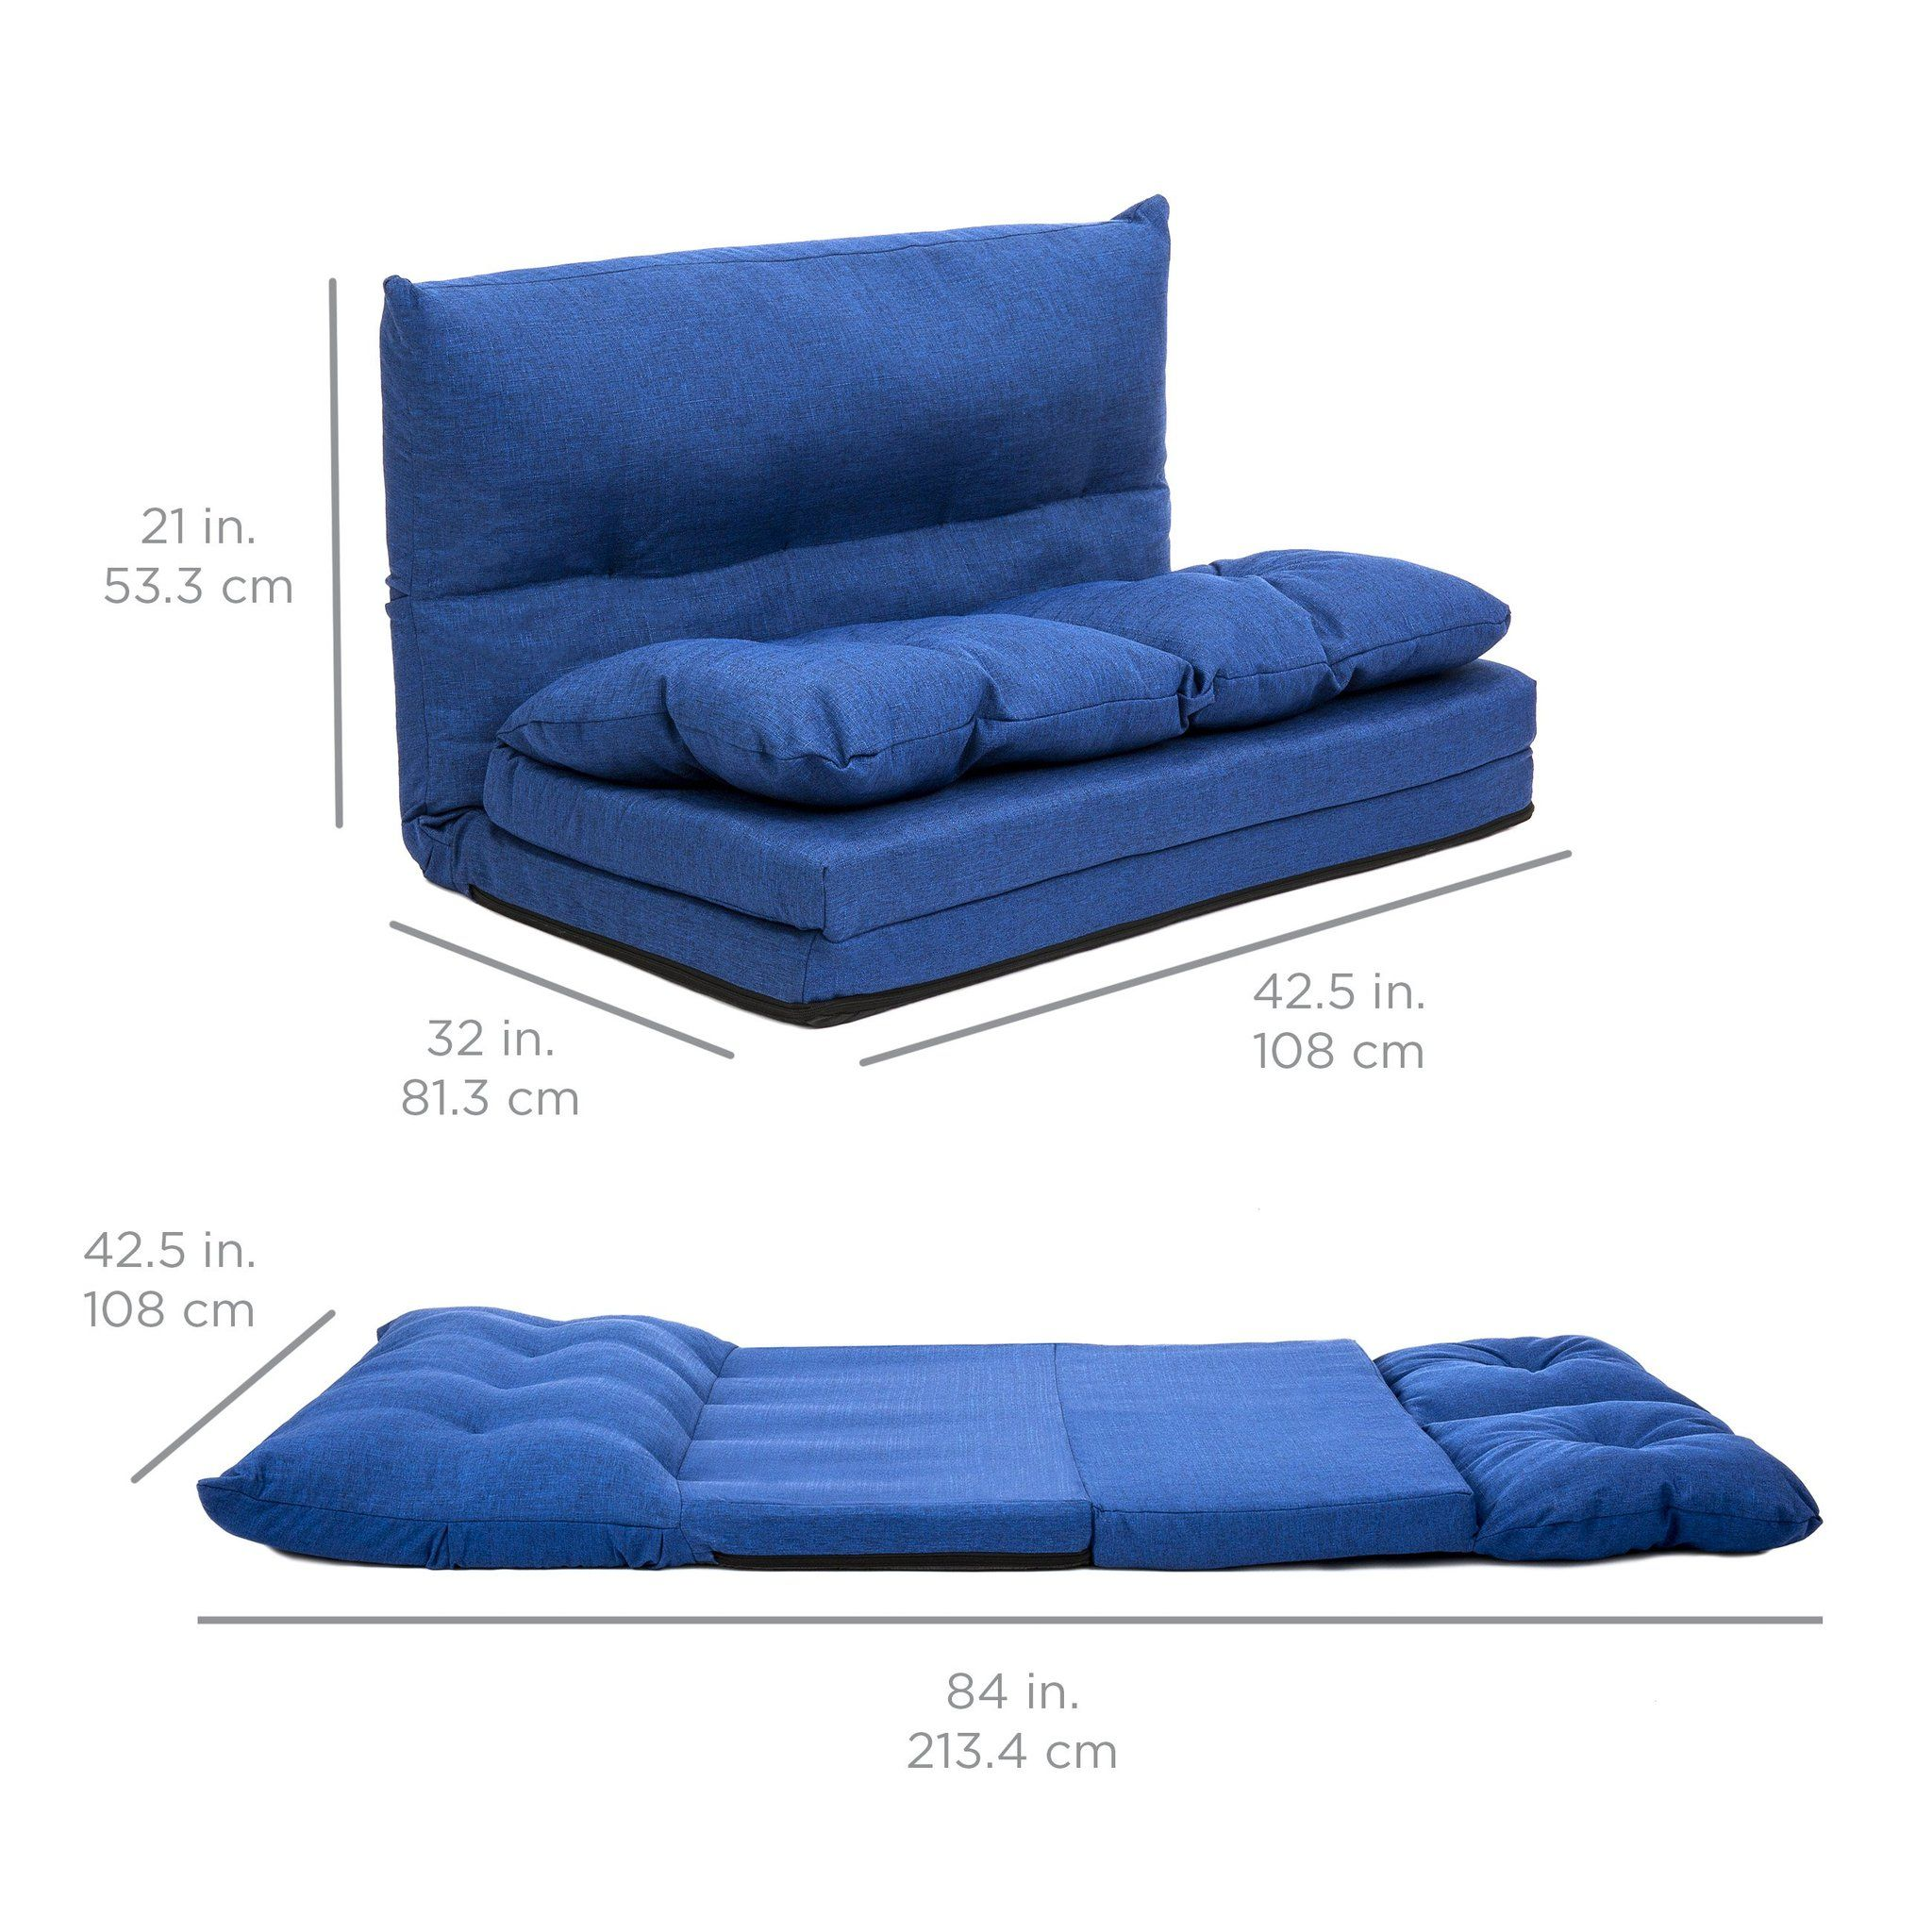 Groovy Fabric Folding Lounge Gaming Couch Blue In 2019 Camper Theyellowbook Wood Chair Design Ideas Theyellowbookinfo